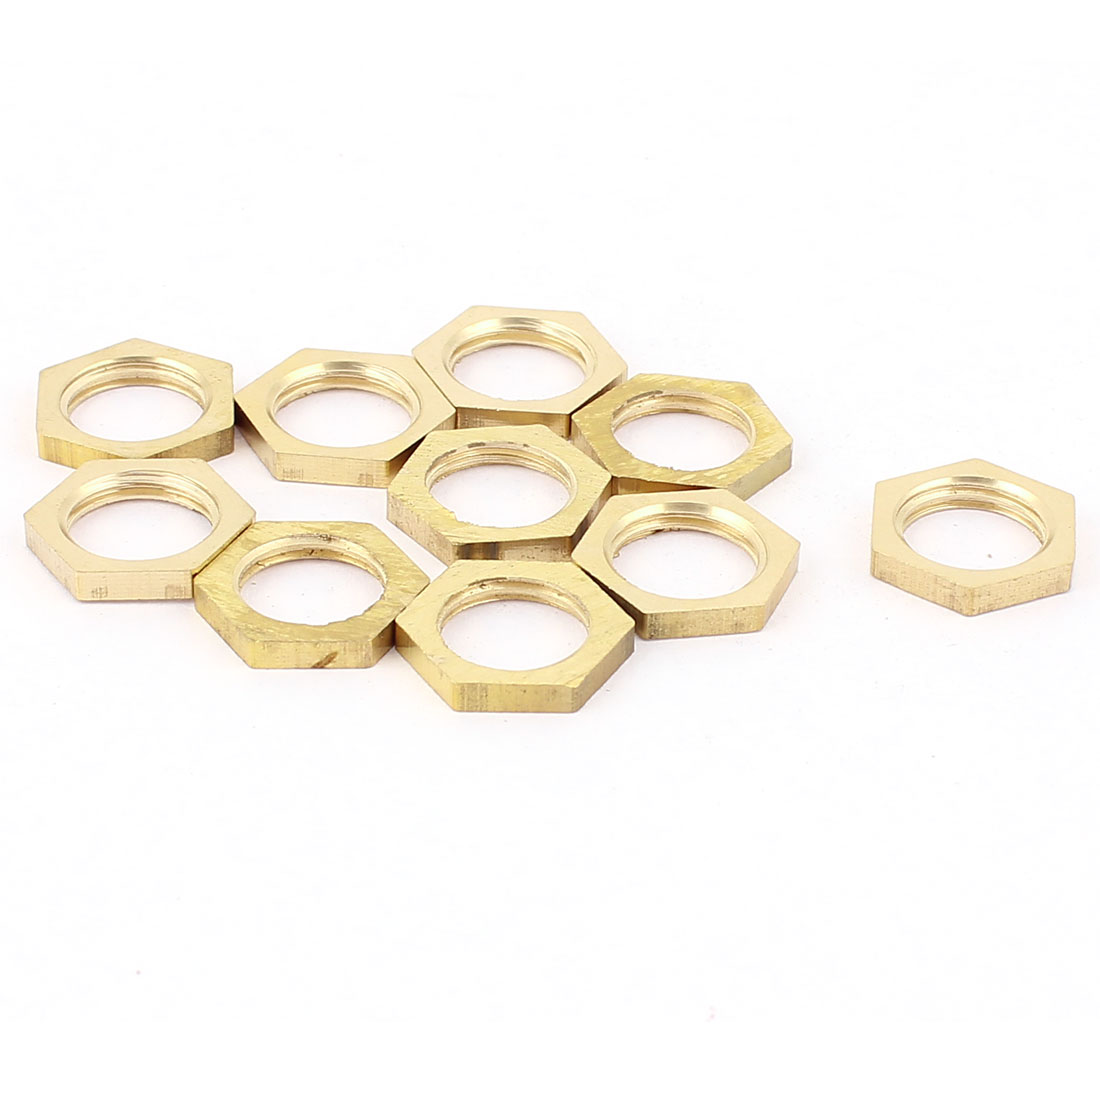 1/4BSP Female Thread Brass Pipe Fitting Hex Lock Nut 10pcs